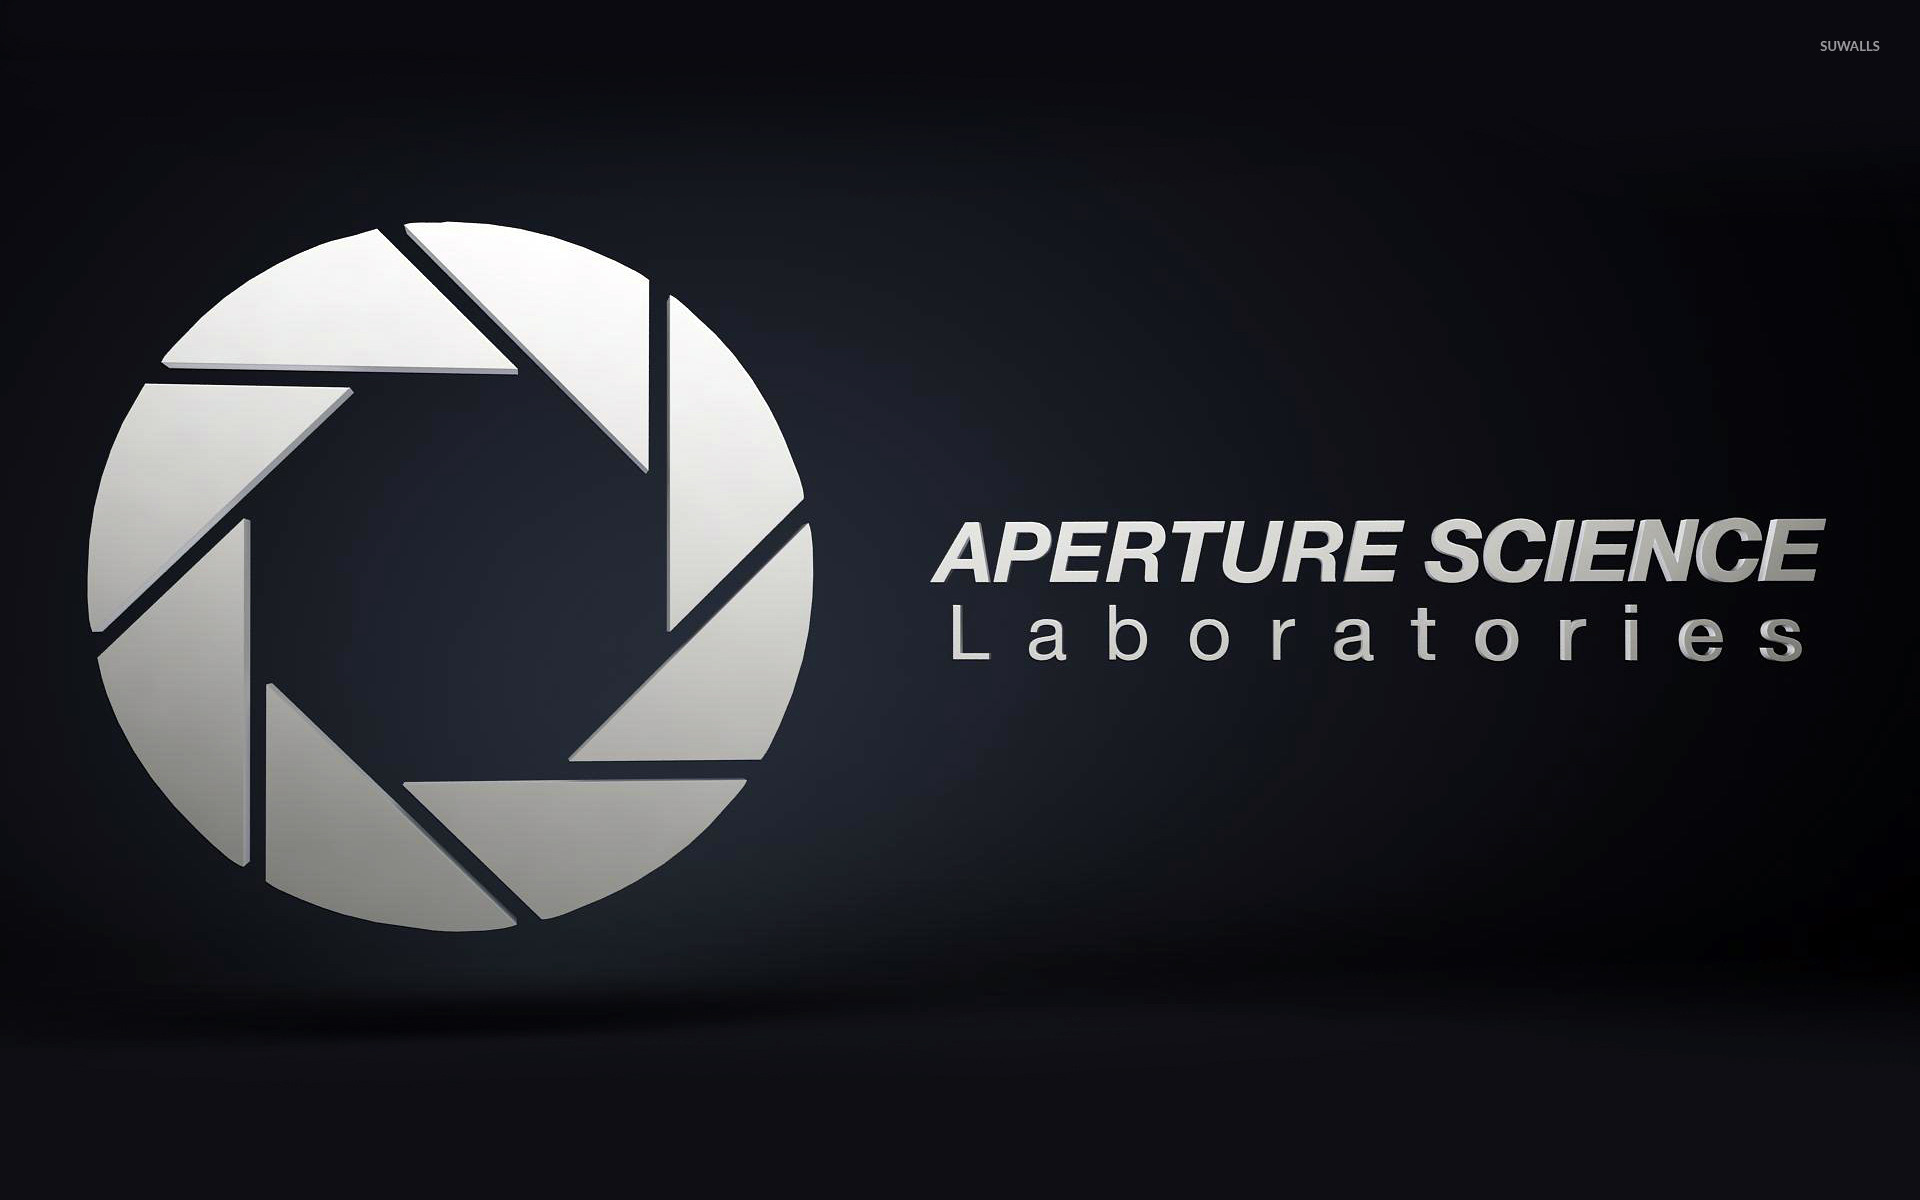 [77+] Aperture Science Background on WallpaperSafari